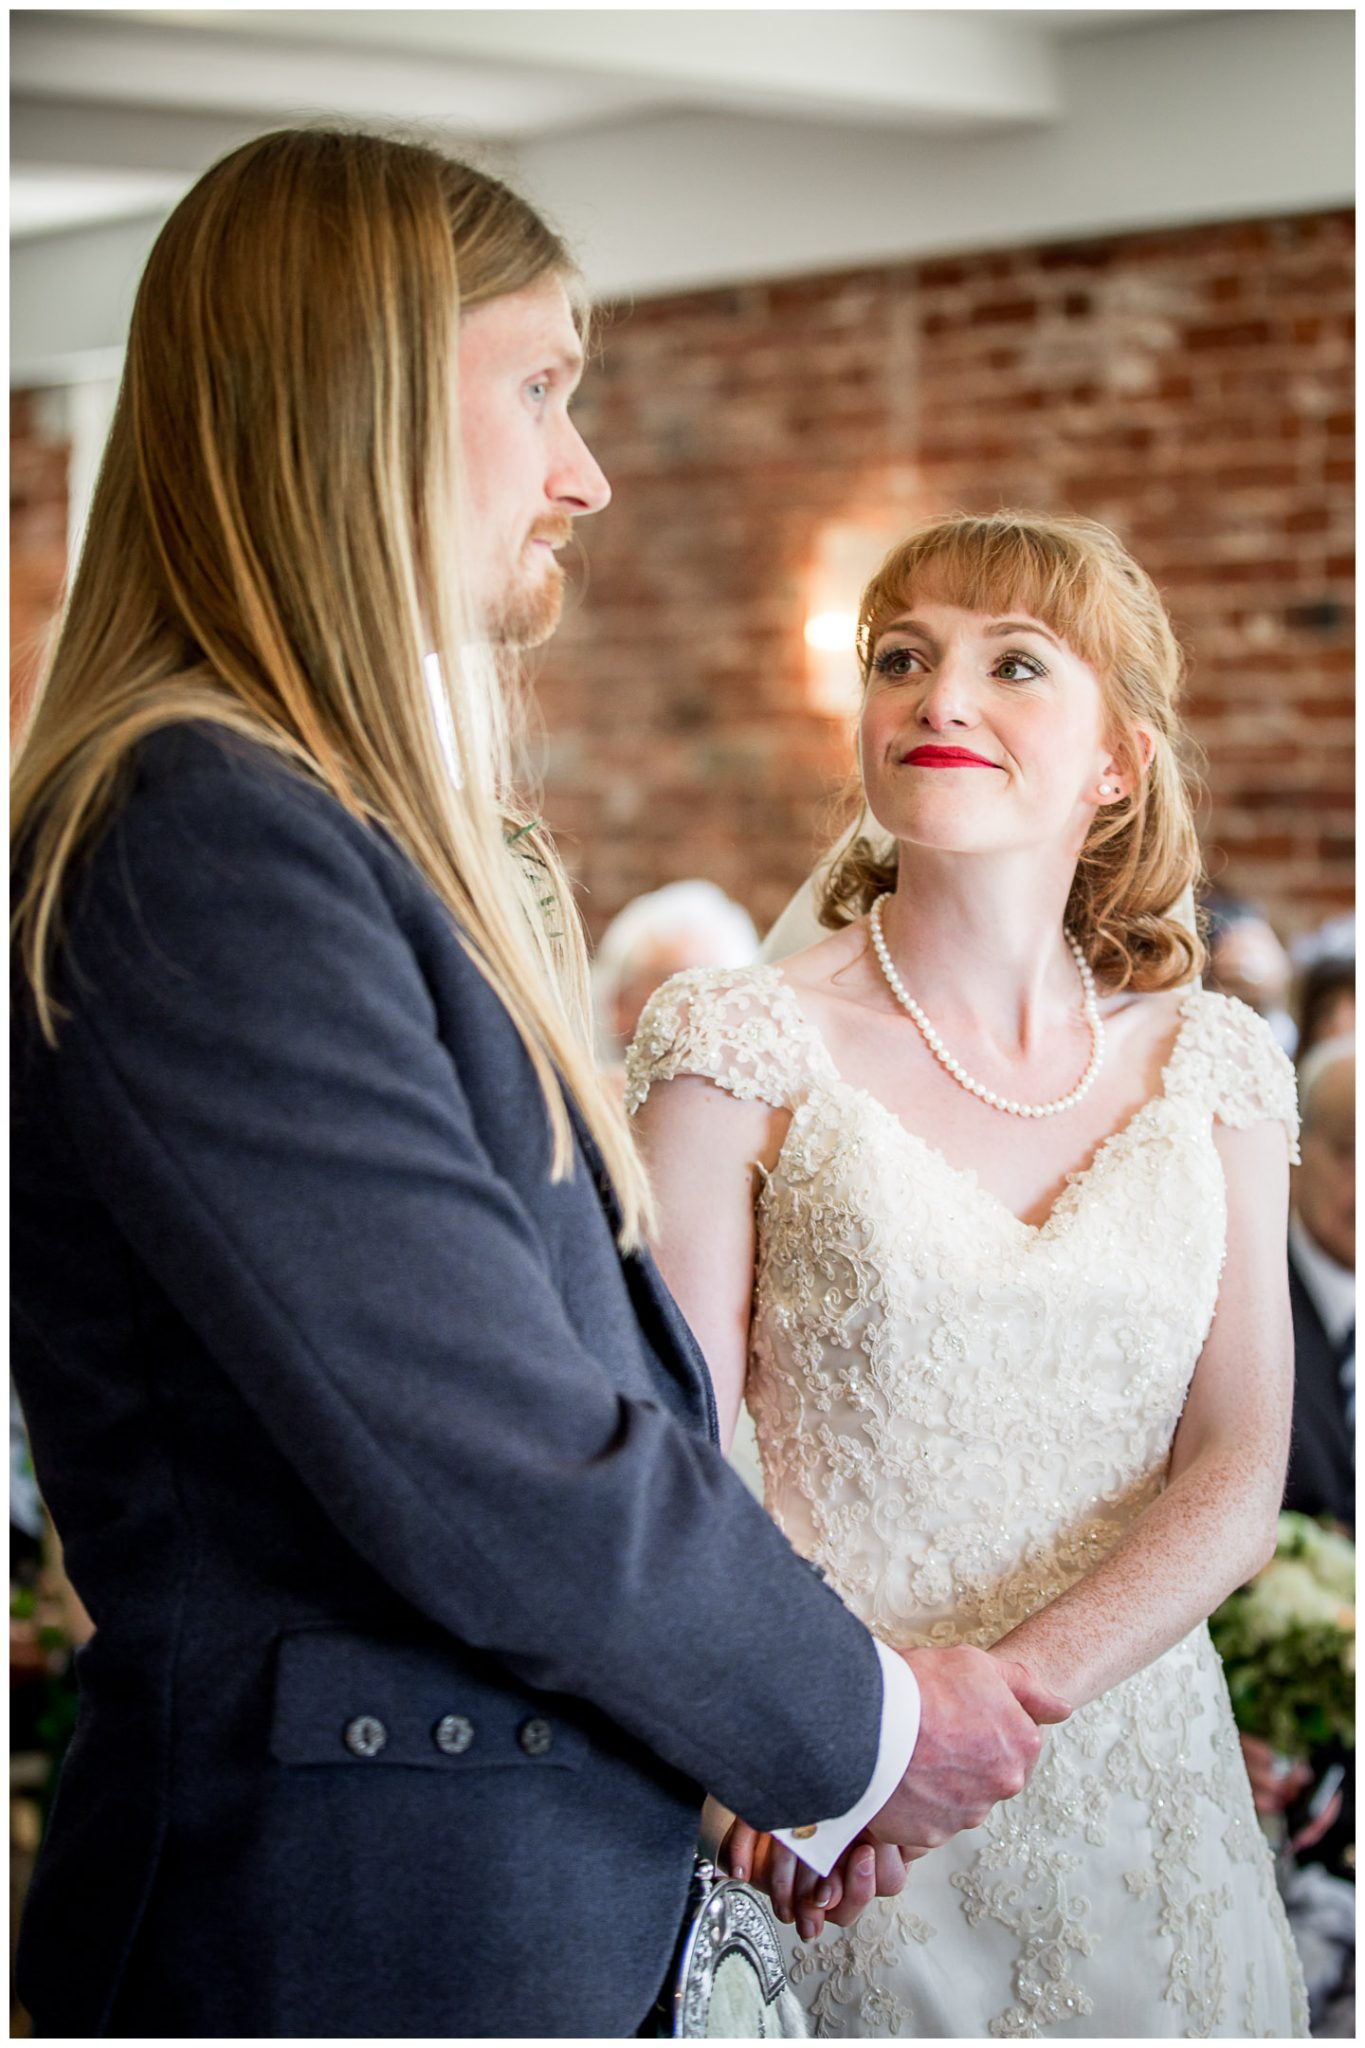 Bride looks at groom at start of marriage service